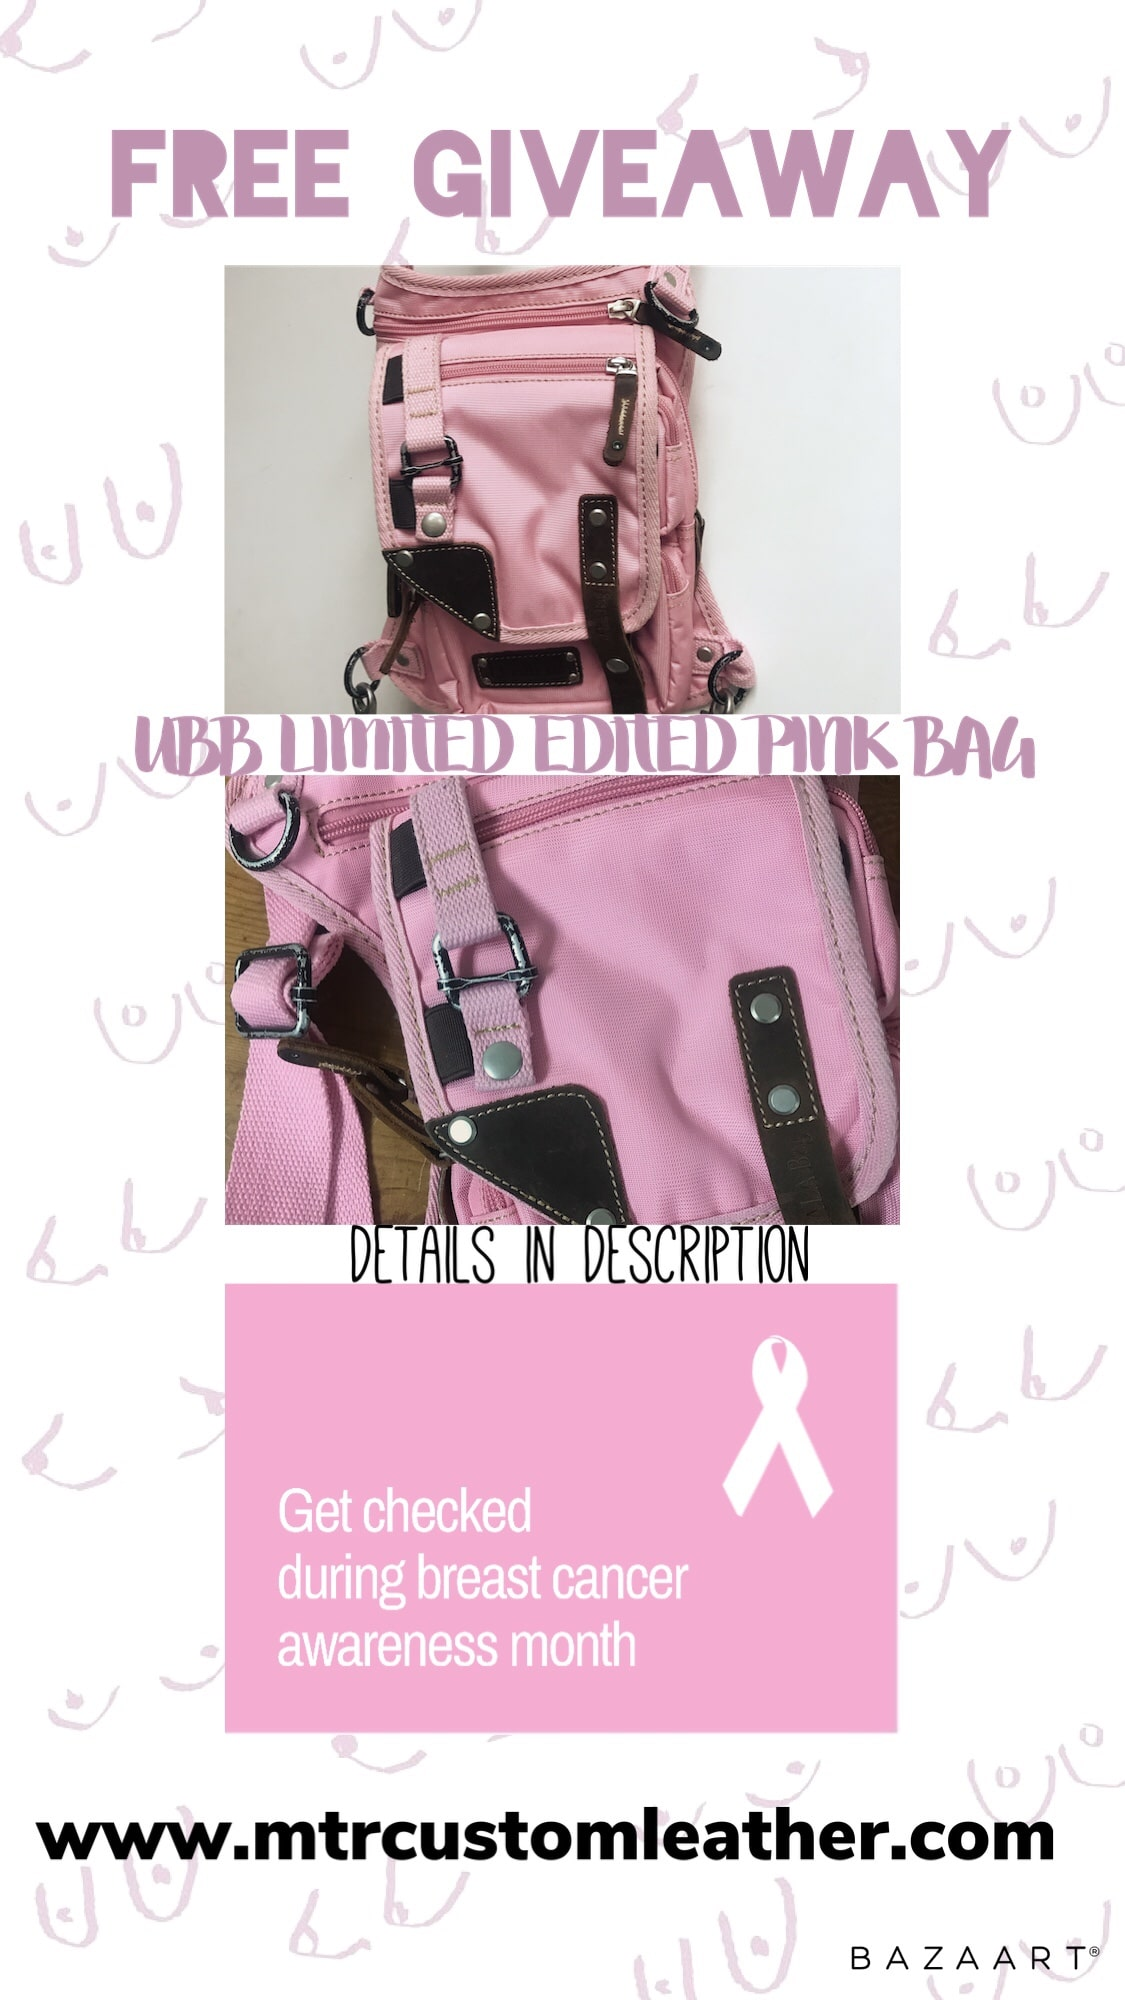 MTR Custom Leather October FREE GIVEAWAY FOR A PINK UBB Bag